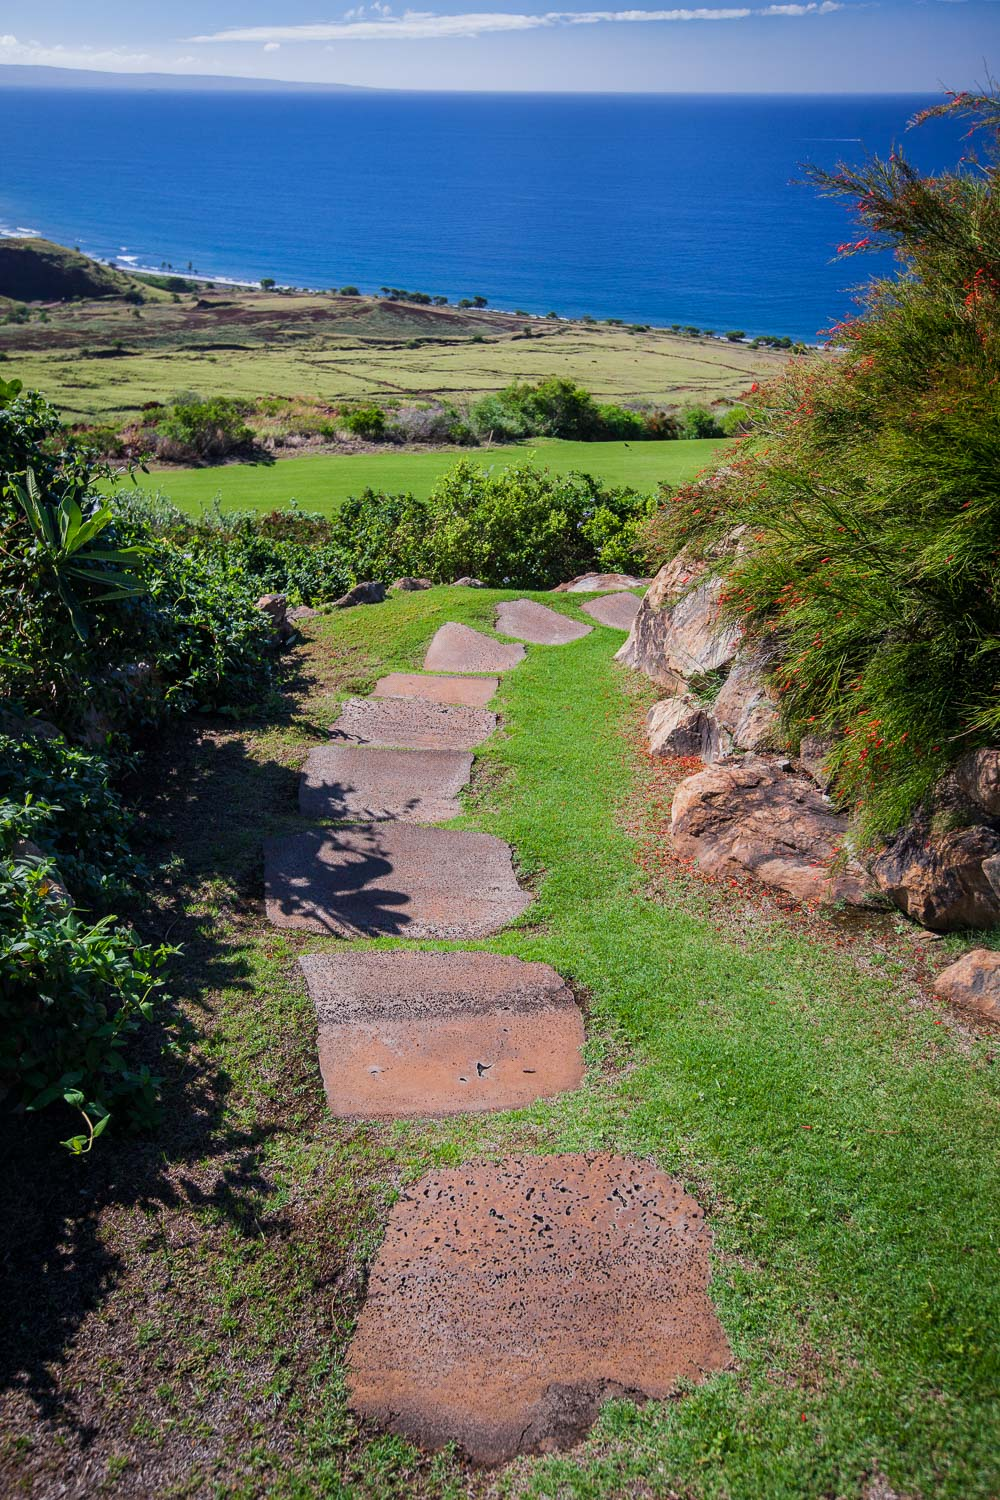 chris-curtis-landscapes-stone-walkway-towards-ocean.jpg